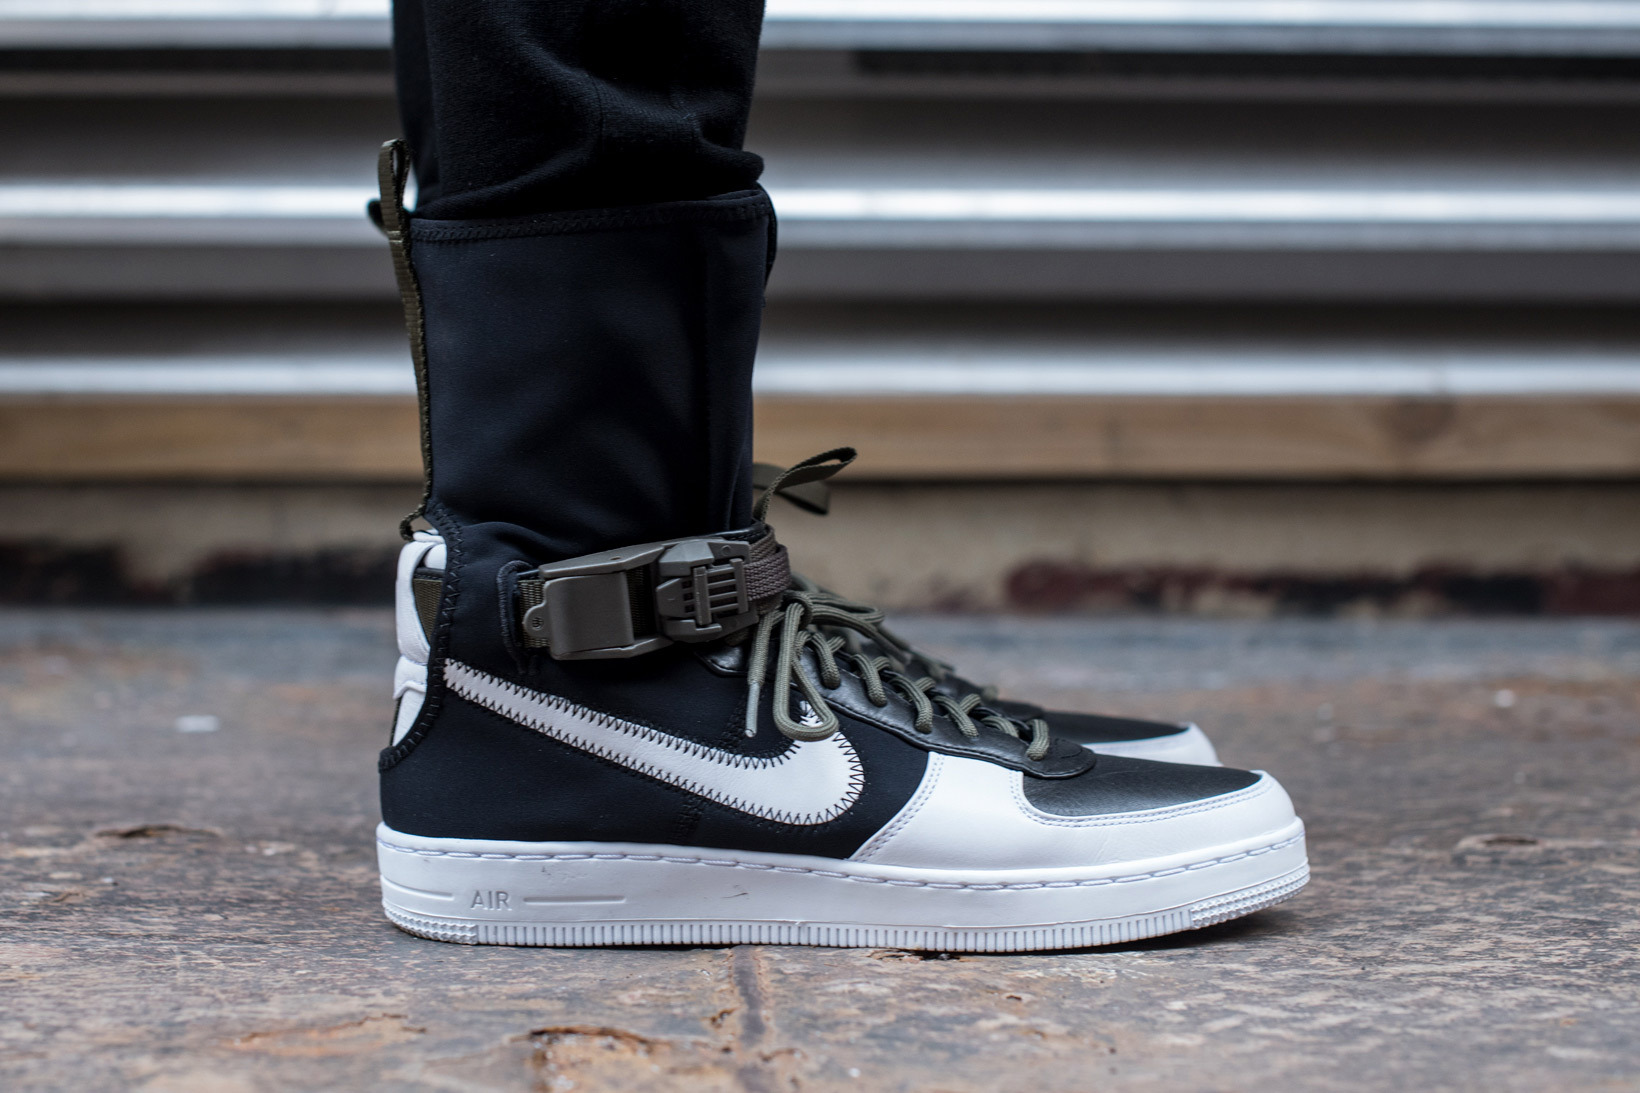 new style 7b6bc c48f9 The collaborative ACRONYM x NikeLab AF1 Downtown Hi launched yesterday at  NikeLabs 21 Mercer location for the first time. ACRONYM online had three  ...